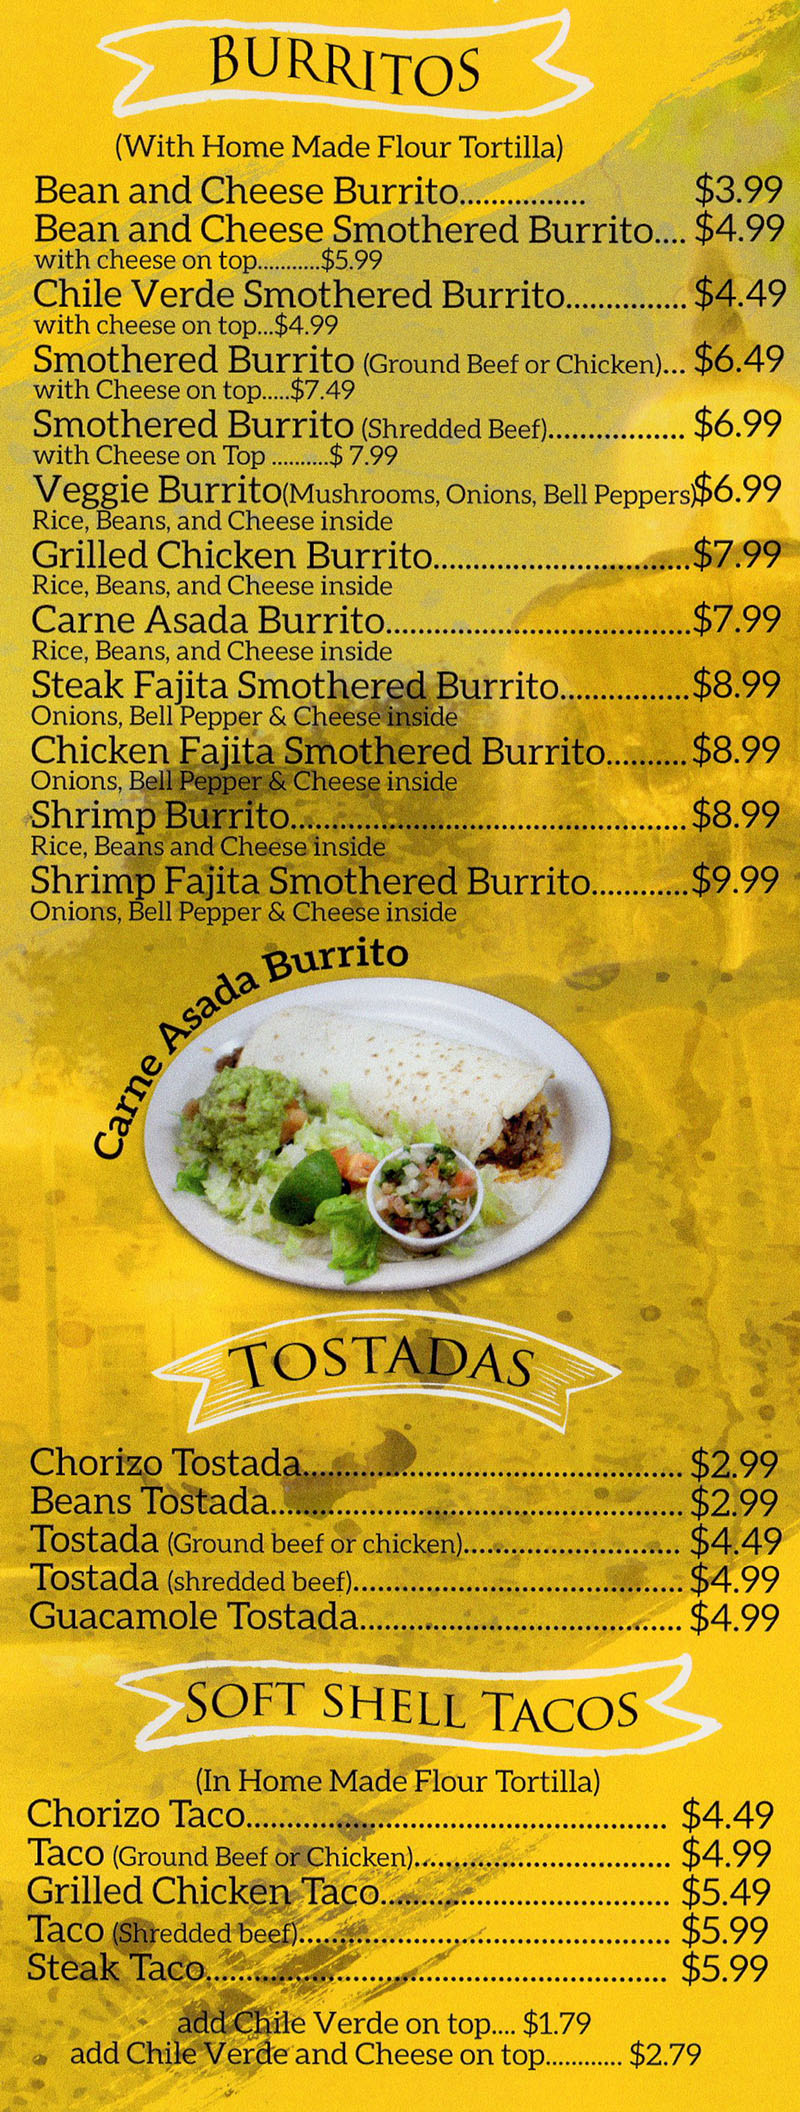 La Fountain menu - burritos, tamales, soft shell tacos, tostadas - ala carte